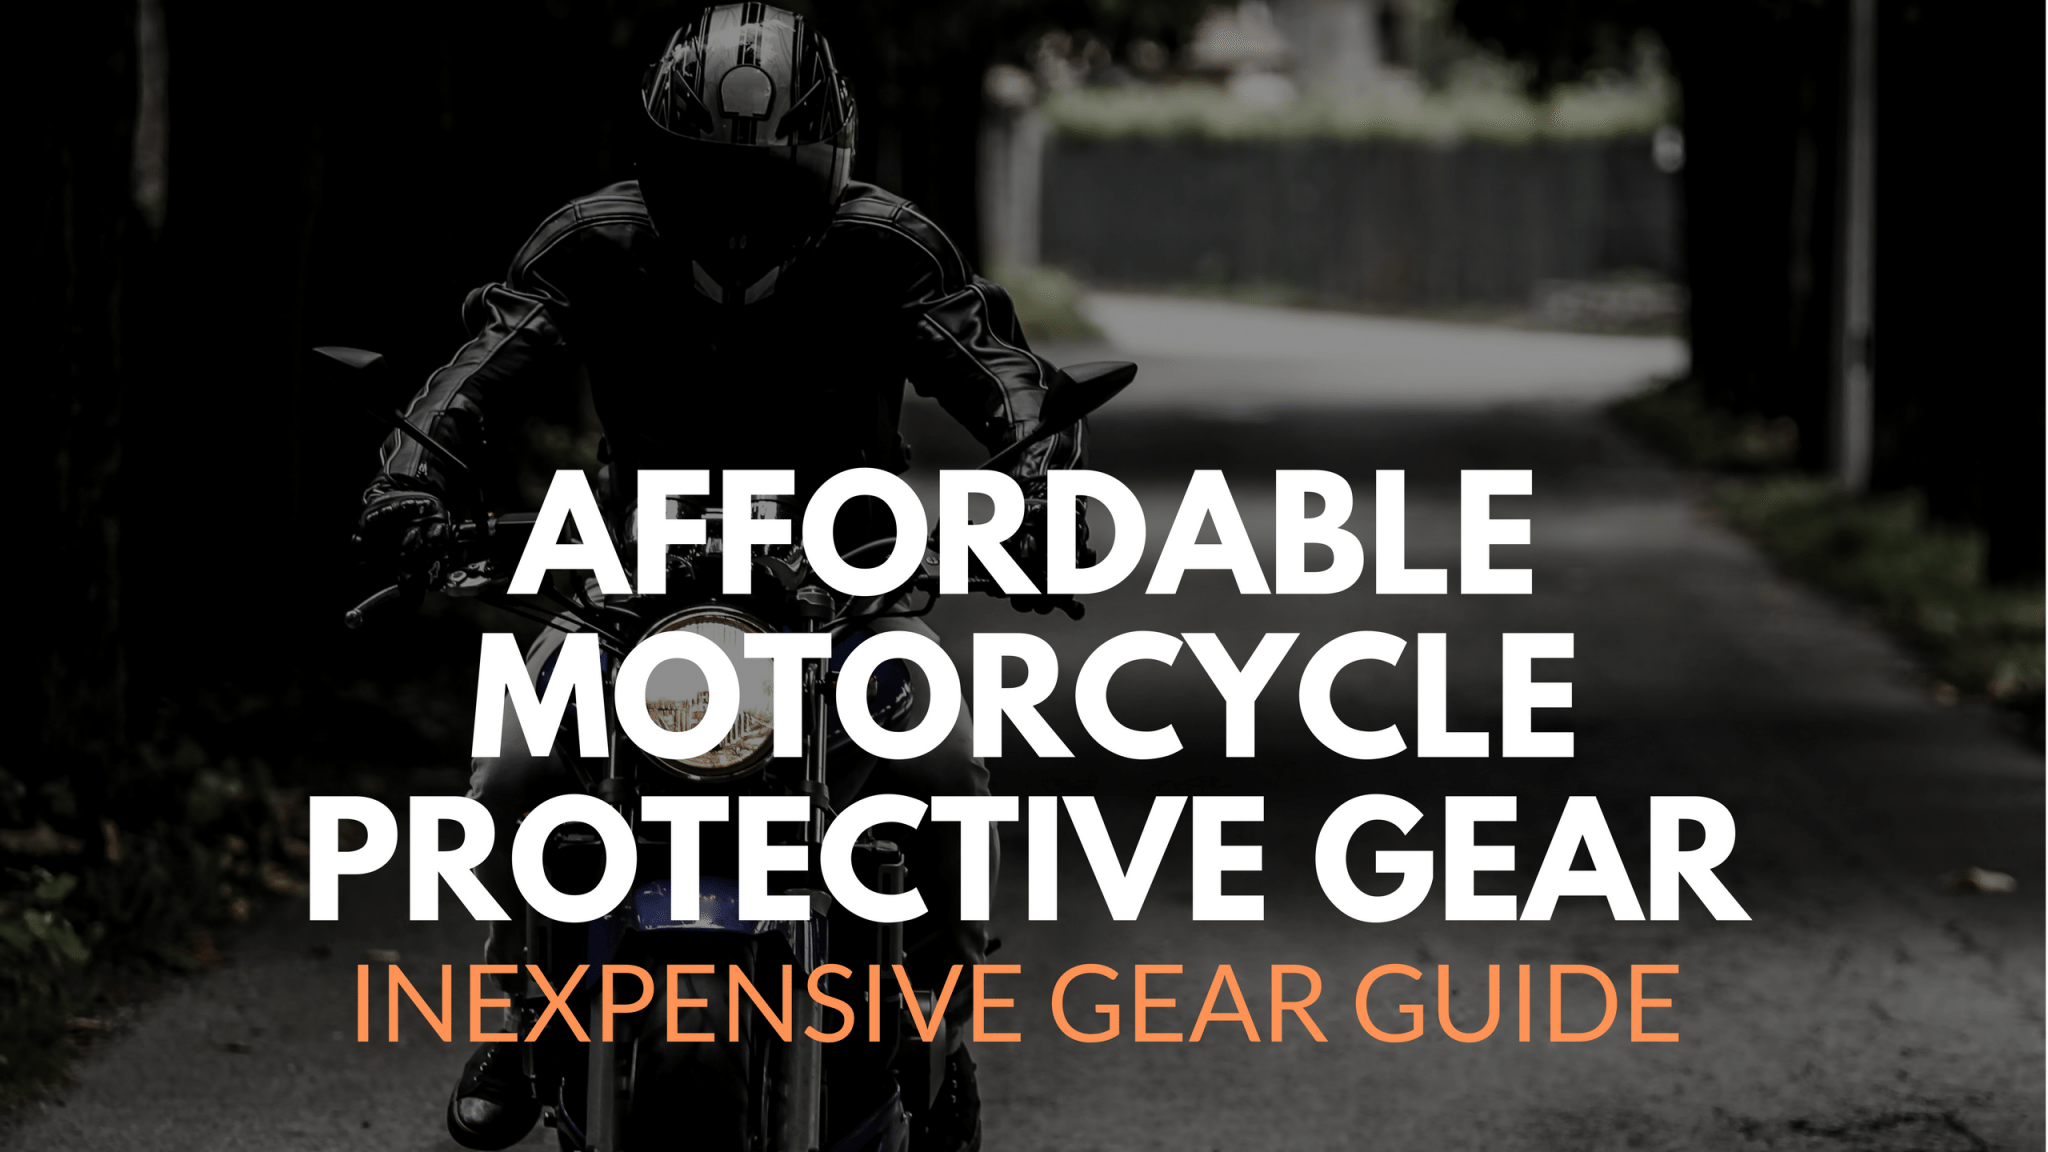 Affordable Motorcycle Protective Gear